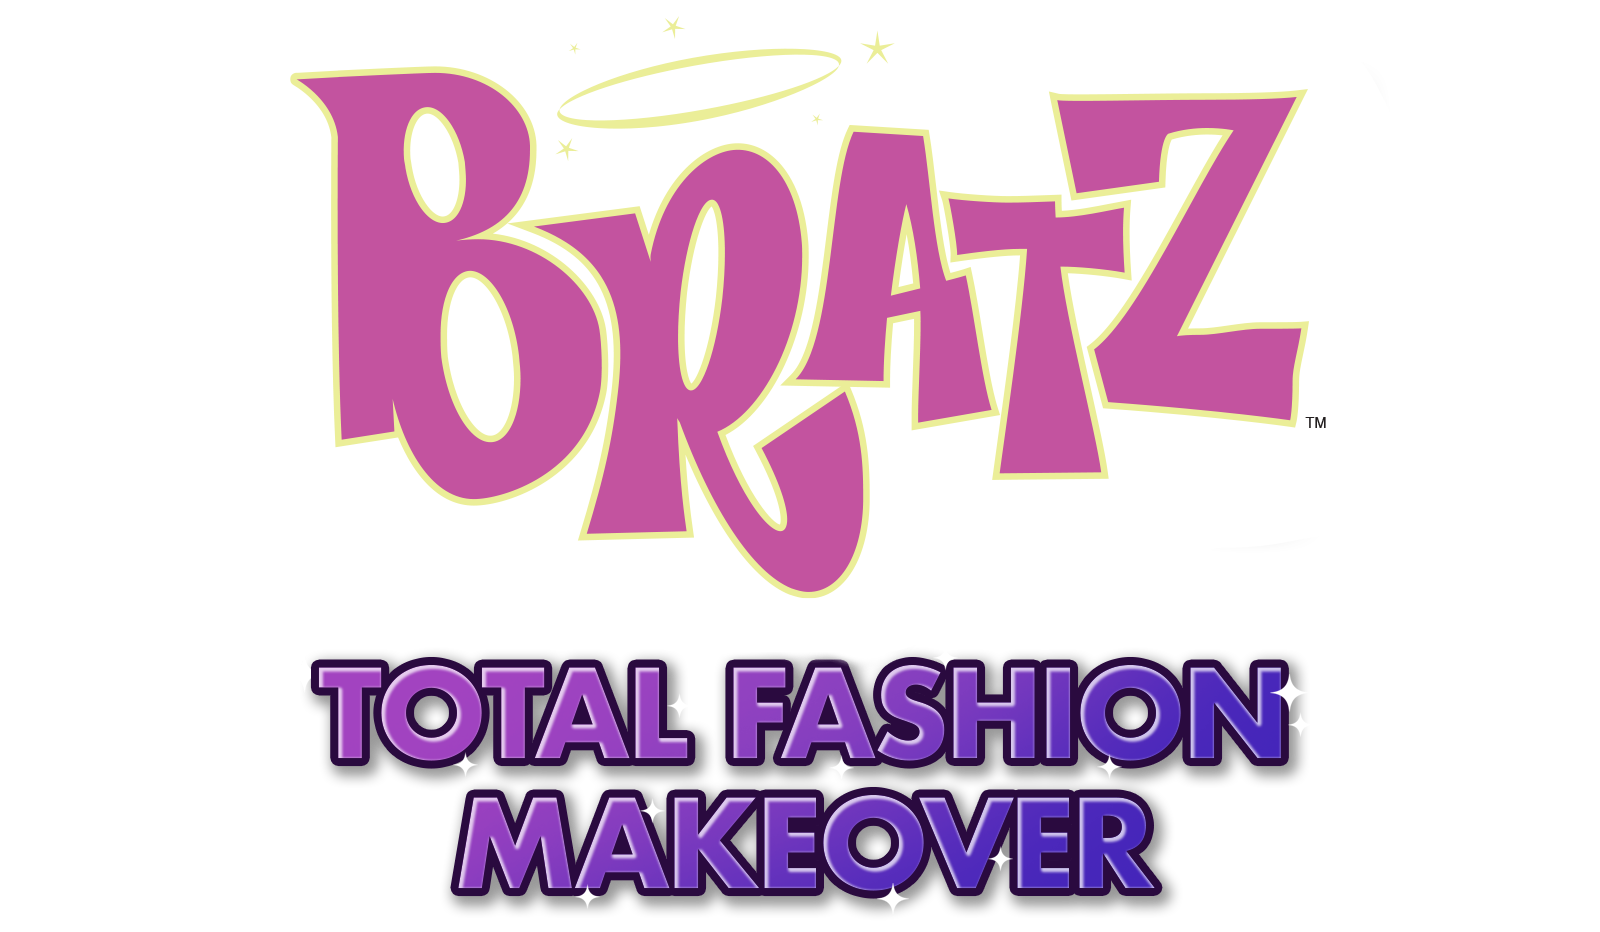 Bratz Total Fashion Makeover Logo - FINAL.png